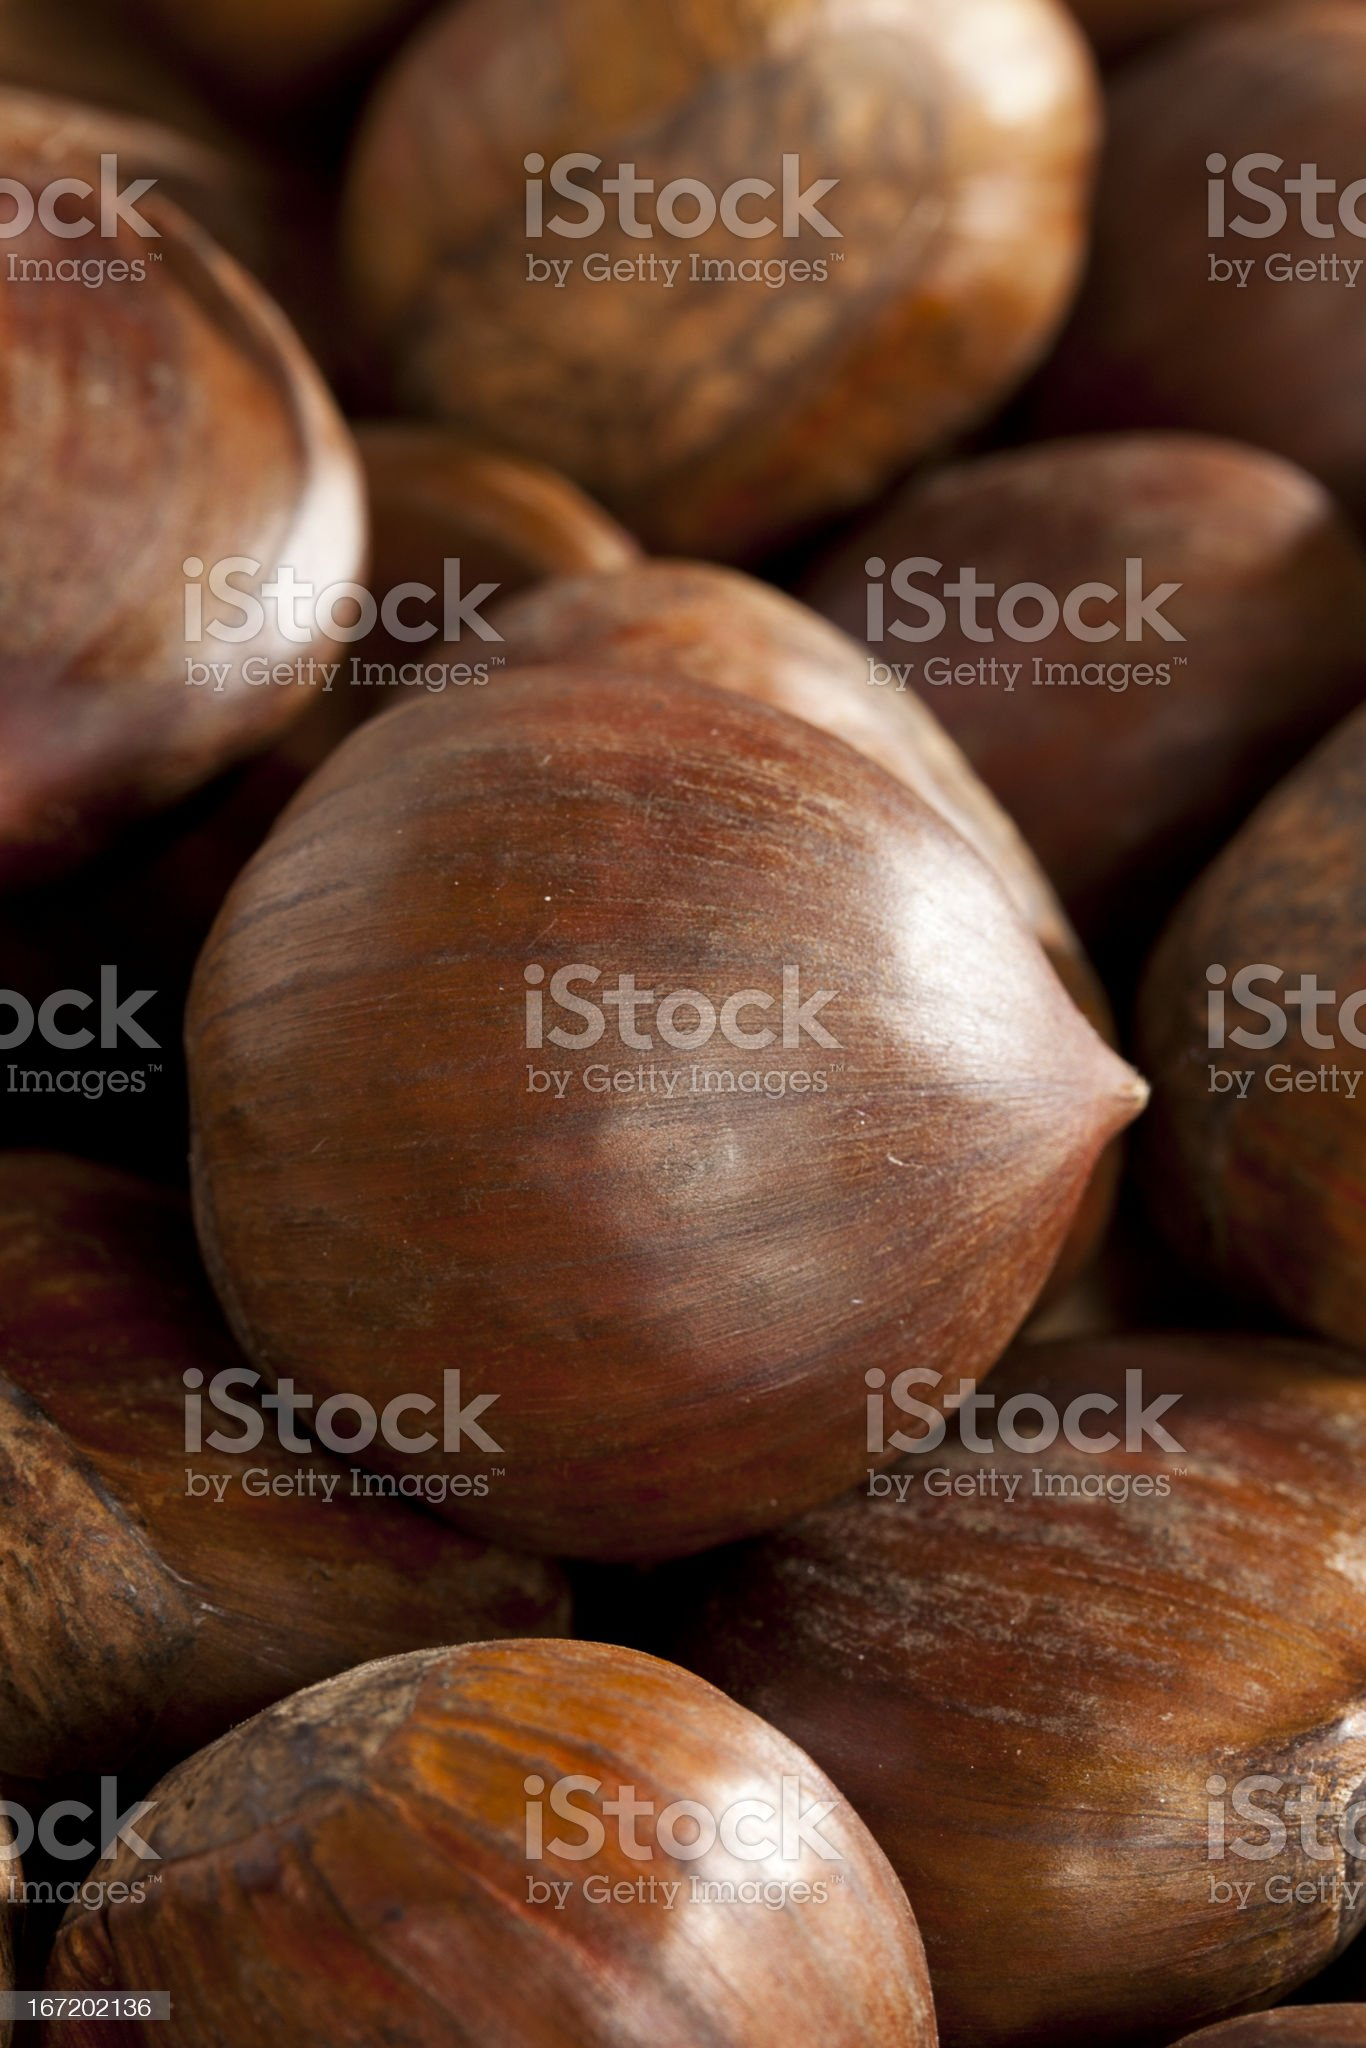 Raw Organic Brown Chestnuts royalty-free stock photo